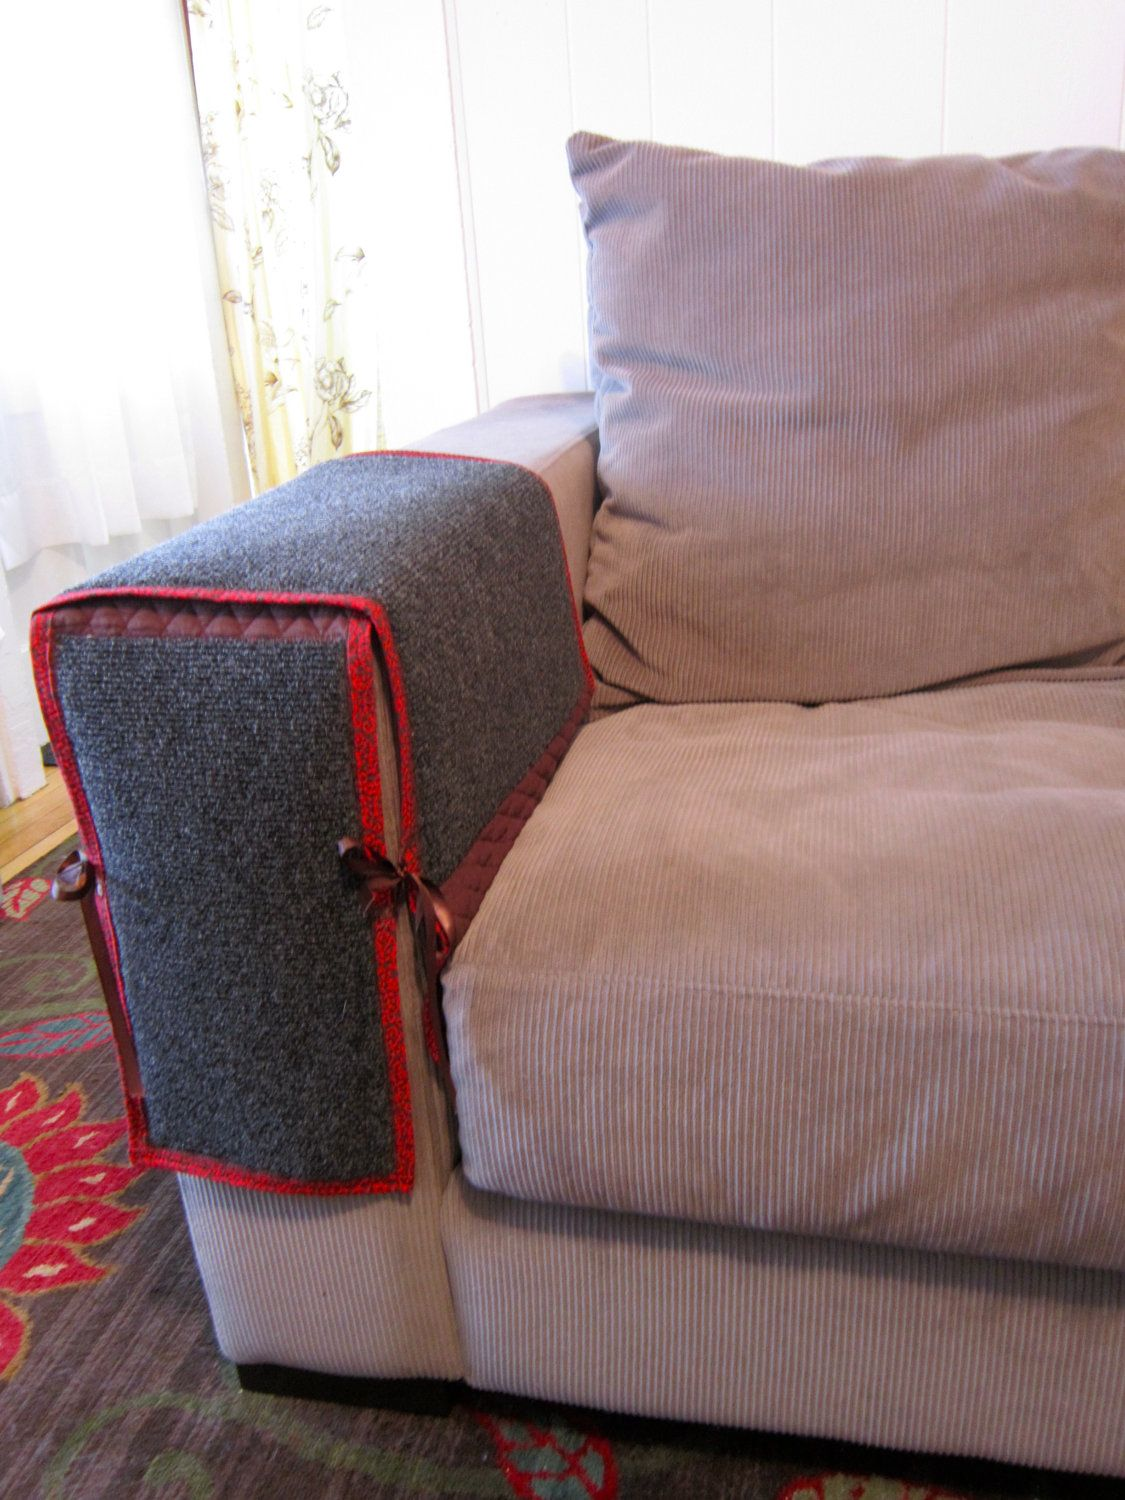 Sofa Sleeper Cat Scratching Couch or Chair Arm Protection via Etsy